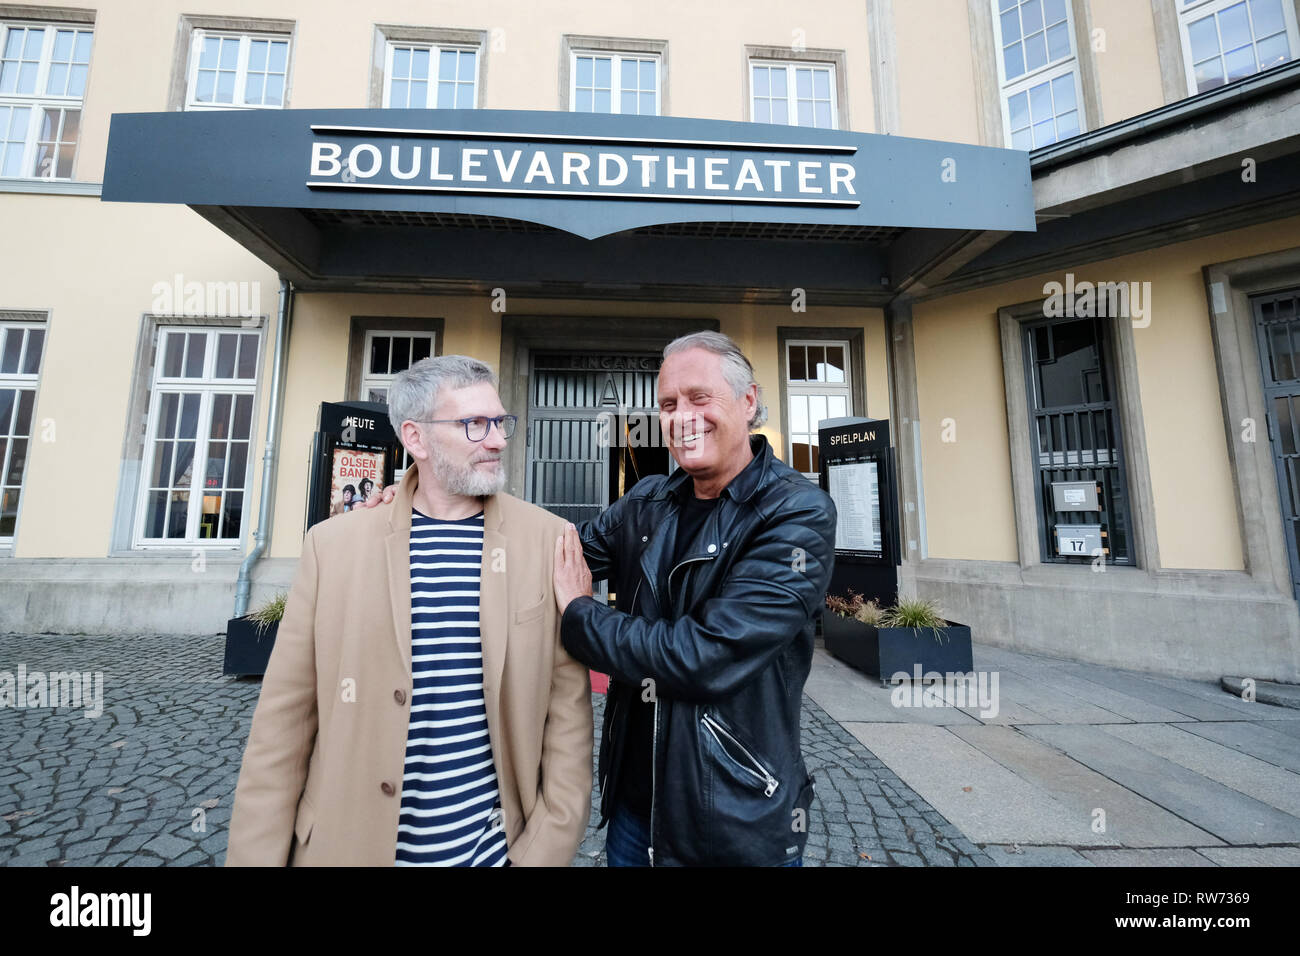 Dresden, Germany. 15th Feb, 2019. Jörg Stempel (r), former head of the GDR record company Amiga, stands with Olaf Becker, artistic director of the boulevard theatre, at the press meeting in front of the venue. The premiere of the play 'The Legend of Hot Summer' will take place there on 10.03.2019. The theatre show is about the 'Sound of the East'. Credit: Sebastian Willnow/dpa-Zentralbild/dpa/Alamy Live News - Stock Image